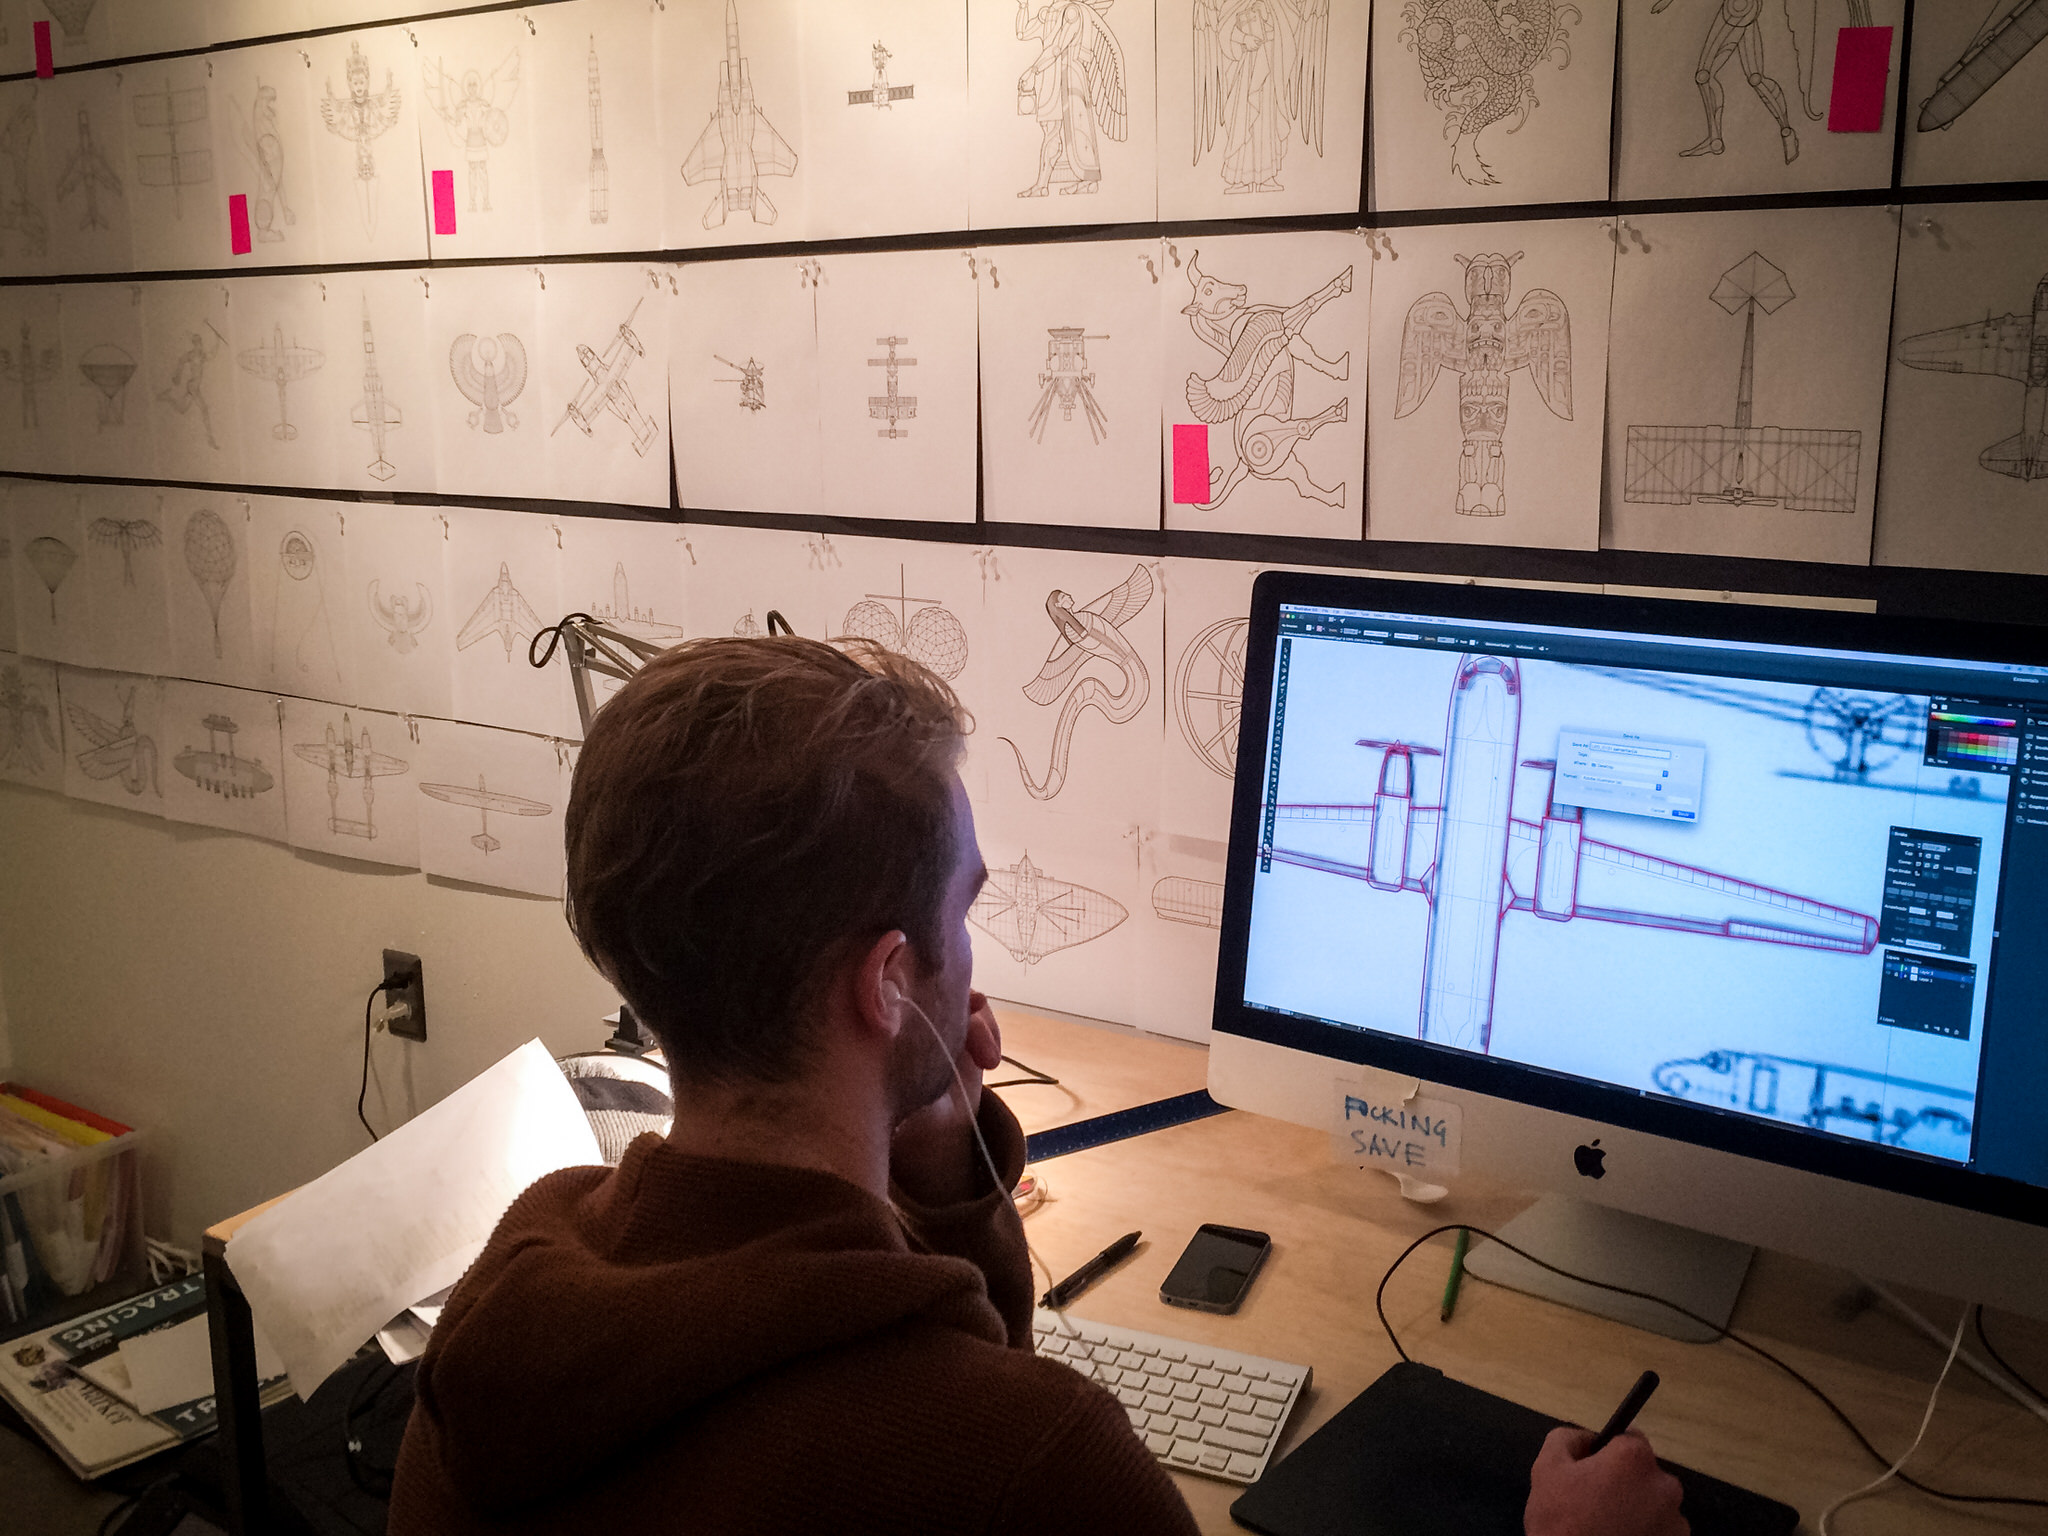 Frequent CSB collaborator and illustrator Christian England works on one of the almost 200 original illustrations for the Tunnel of Dreams entry portal.